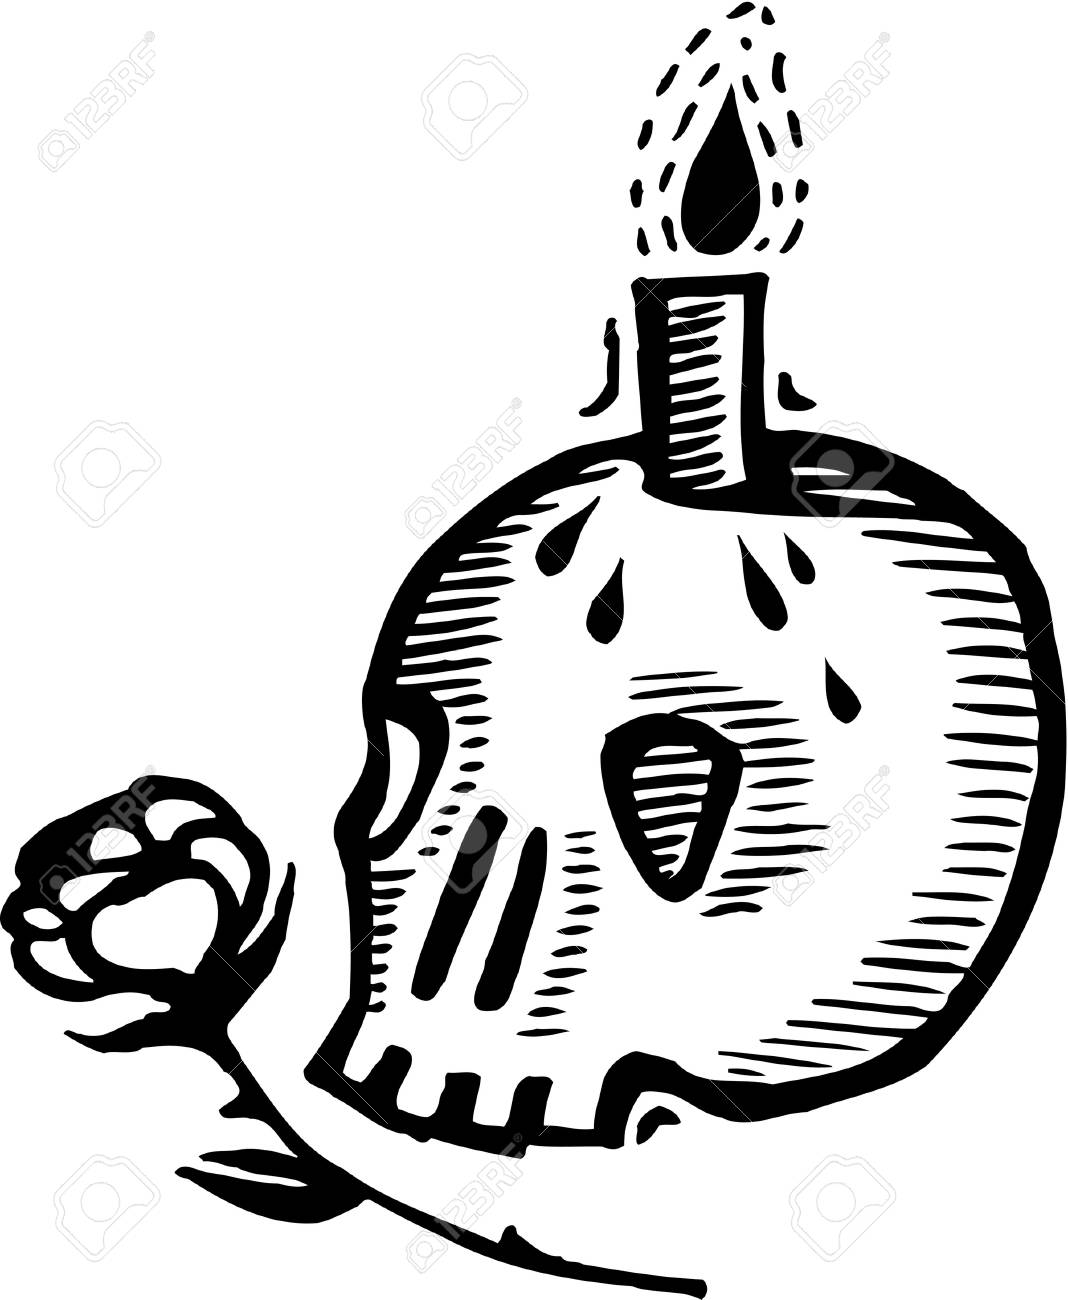 Black And White Skull Candle Holder And Rose Stock Photo Picture And Royalty Free Image Image 14853387